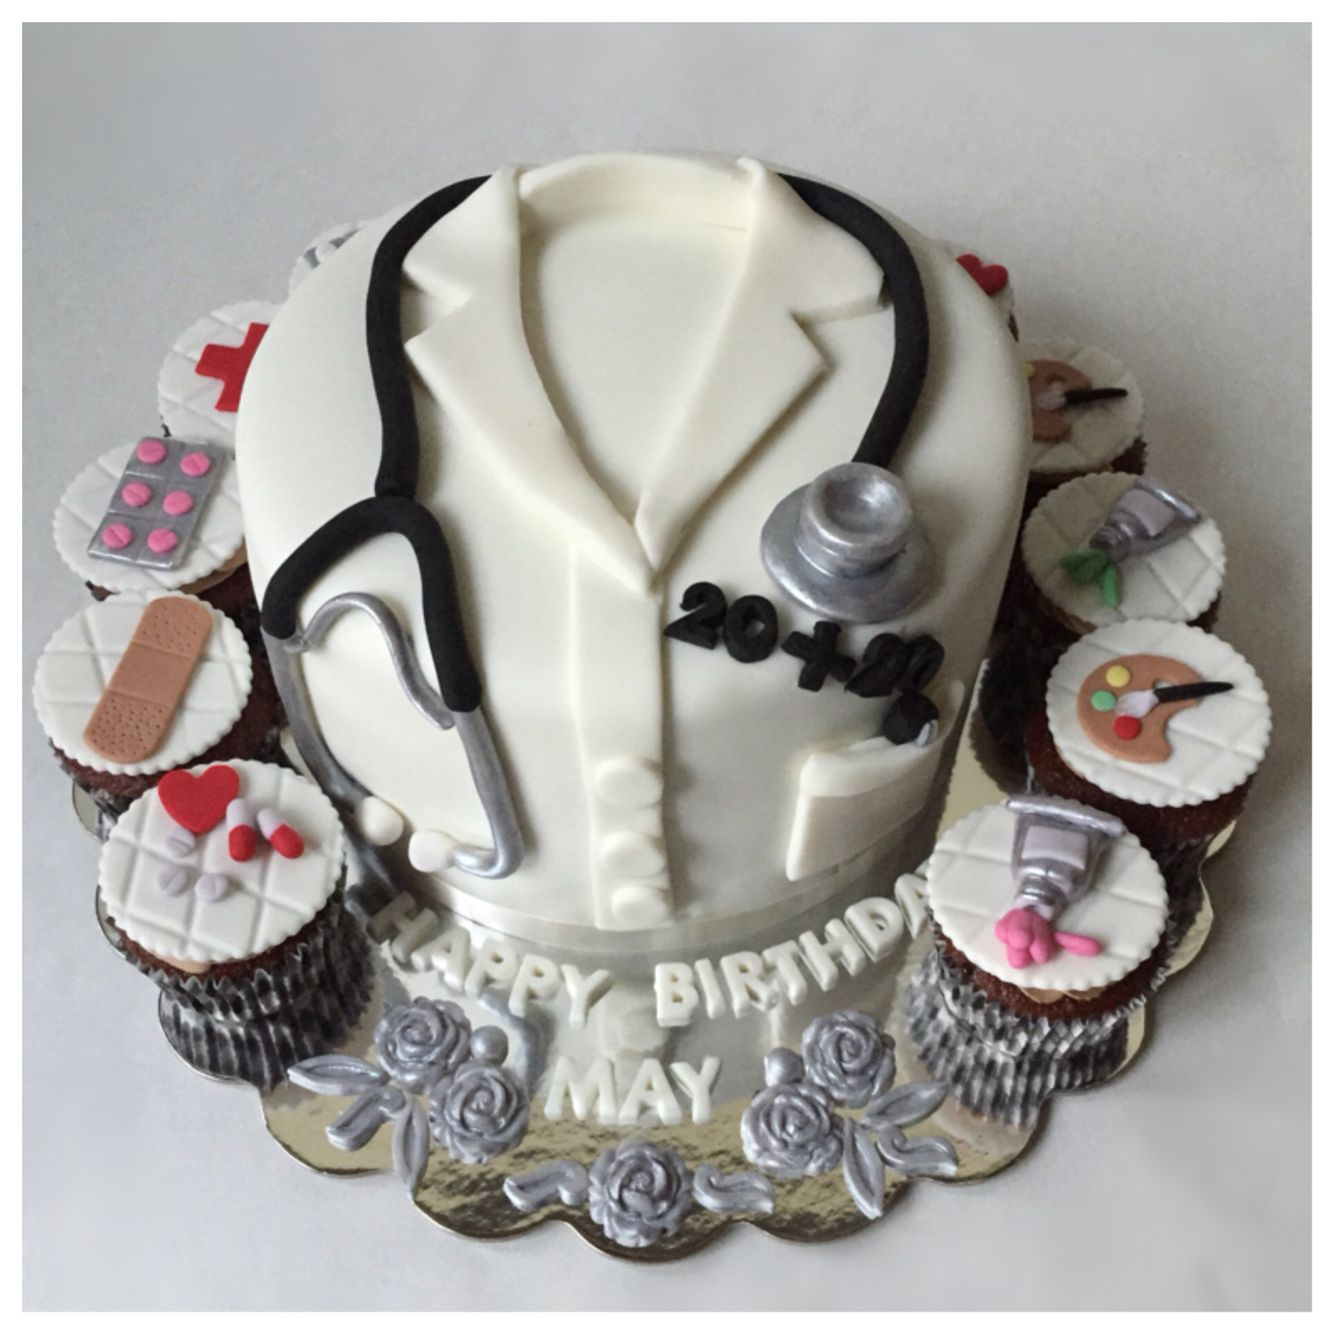 Doctor and artist birthday cake and cupcakes My cakes Pinterest